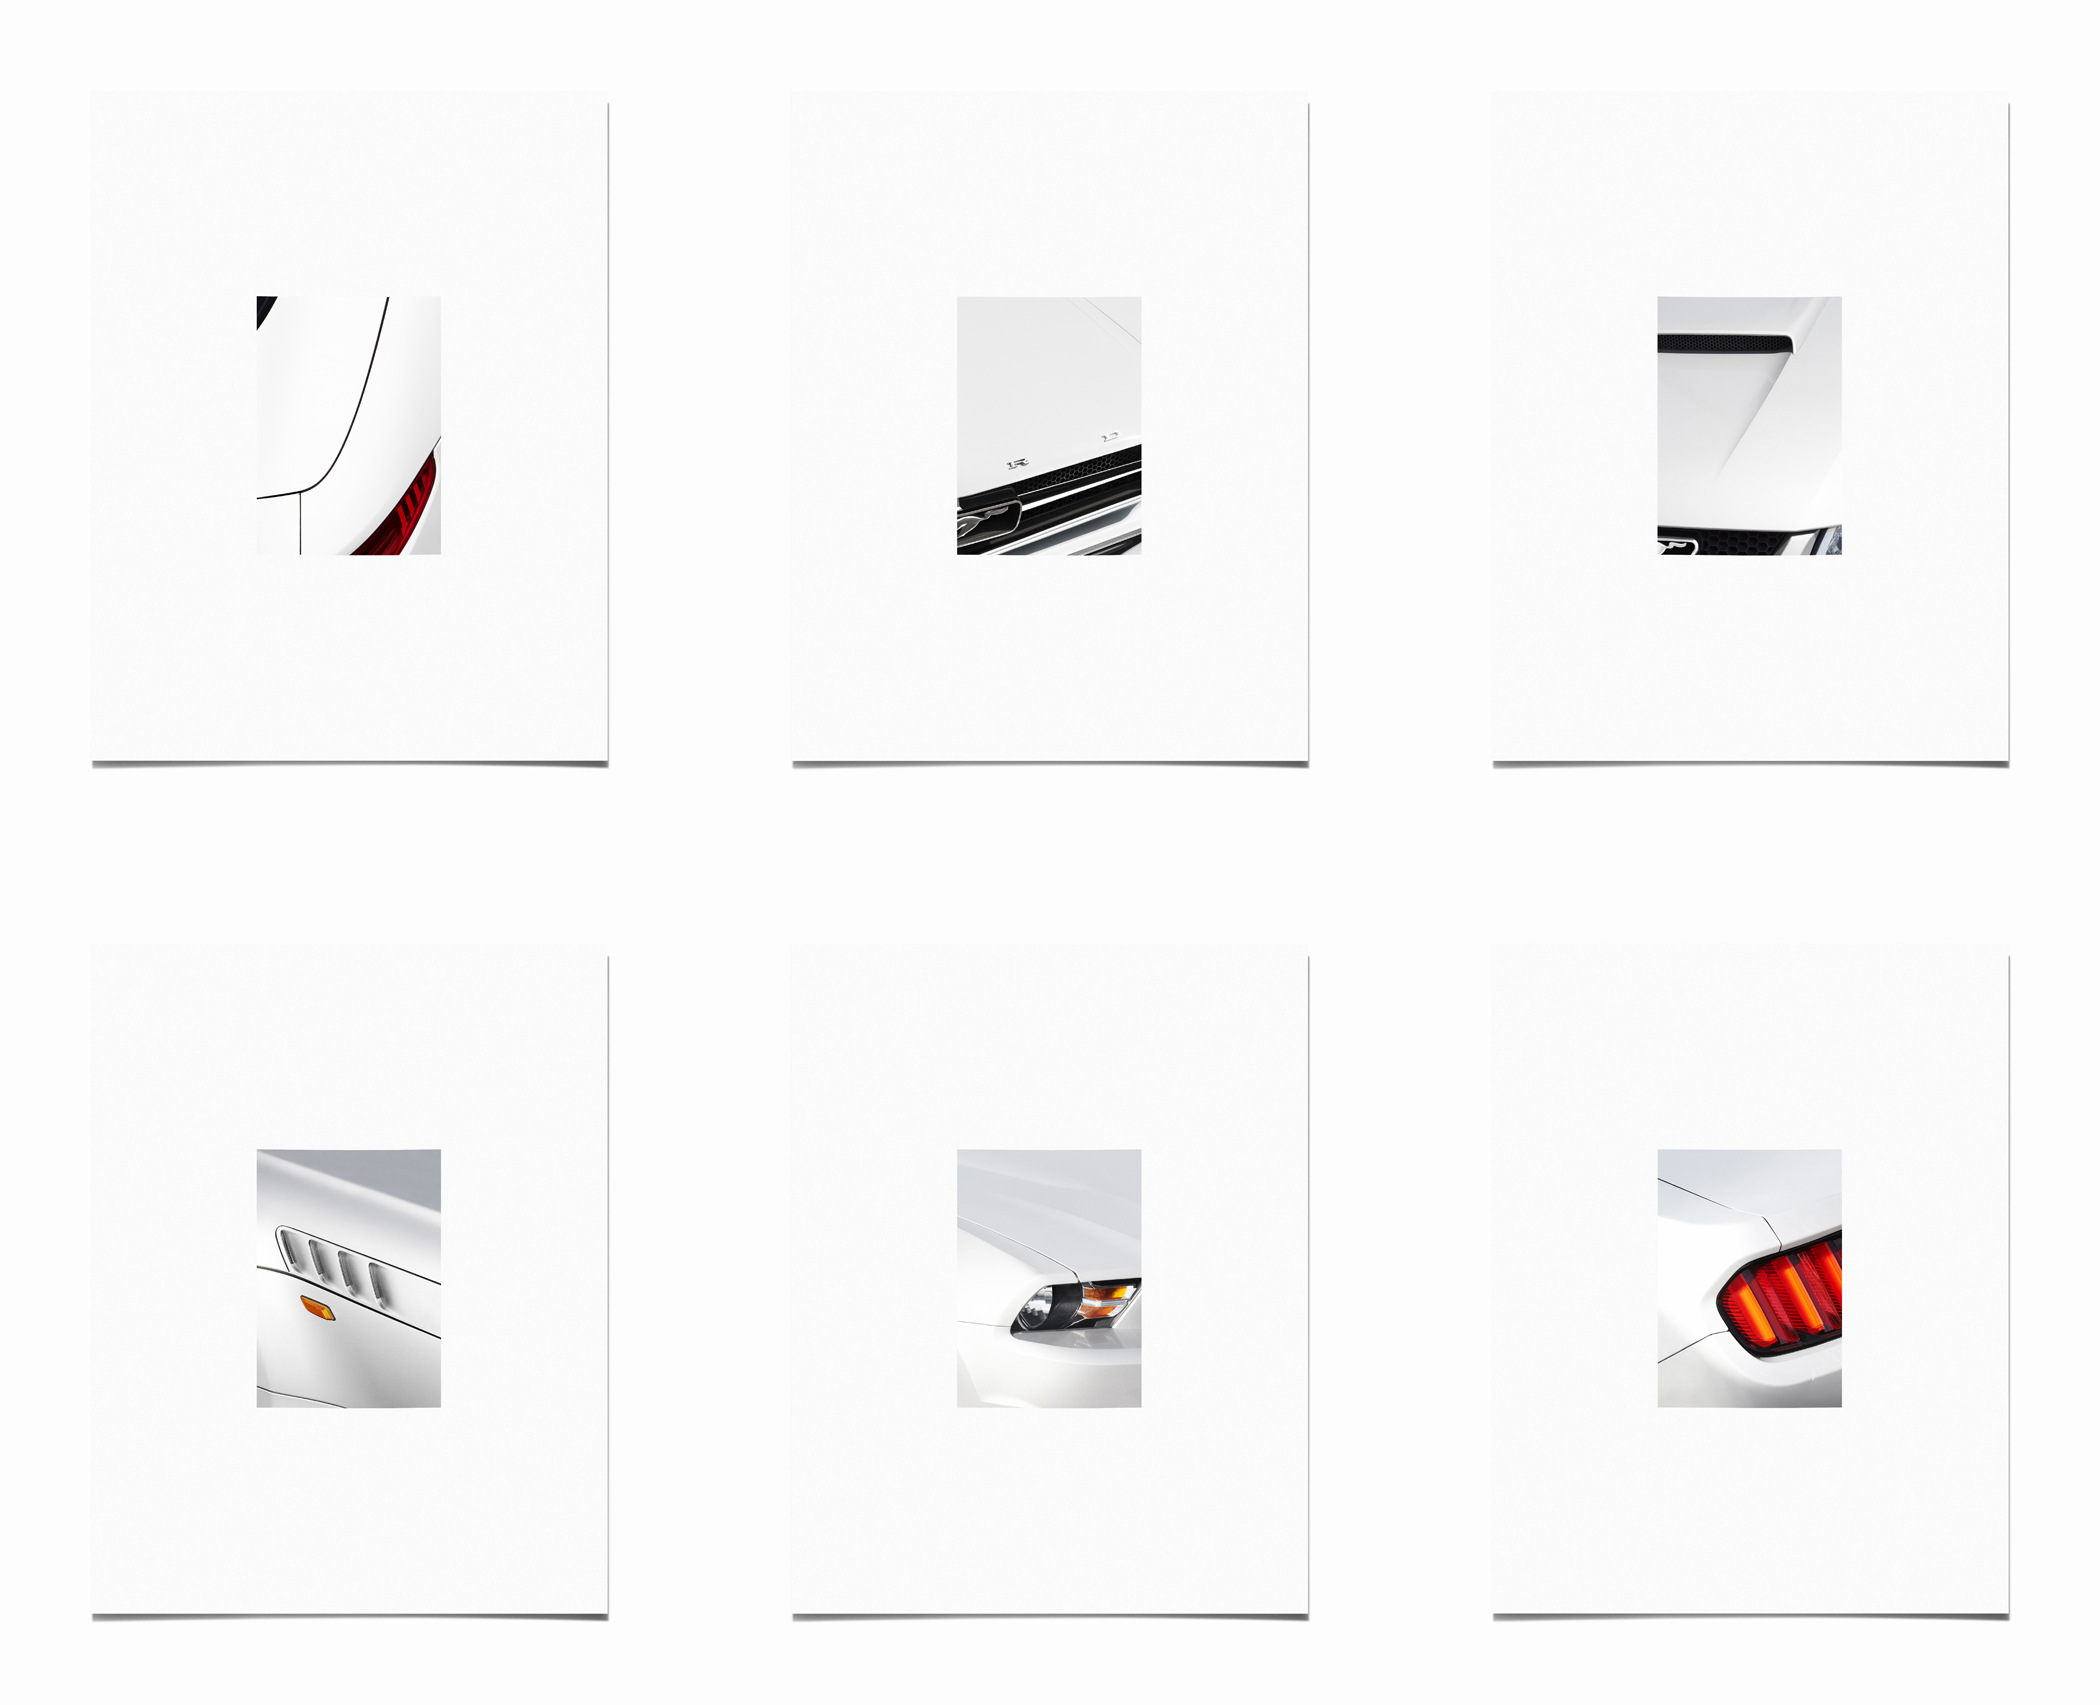 """6 Archival inkjet prints - Edition of 5.  8.5""""x11"""" - Hahnemühle - Fine Art Baryta    Inquire about pricing"""